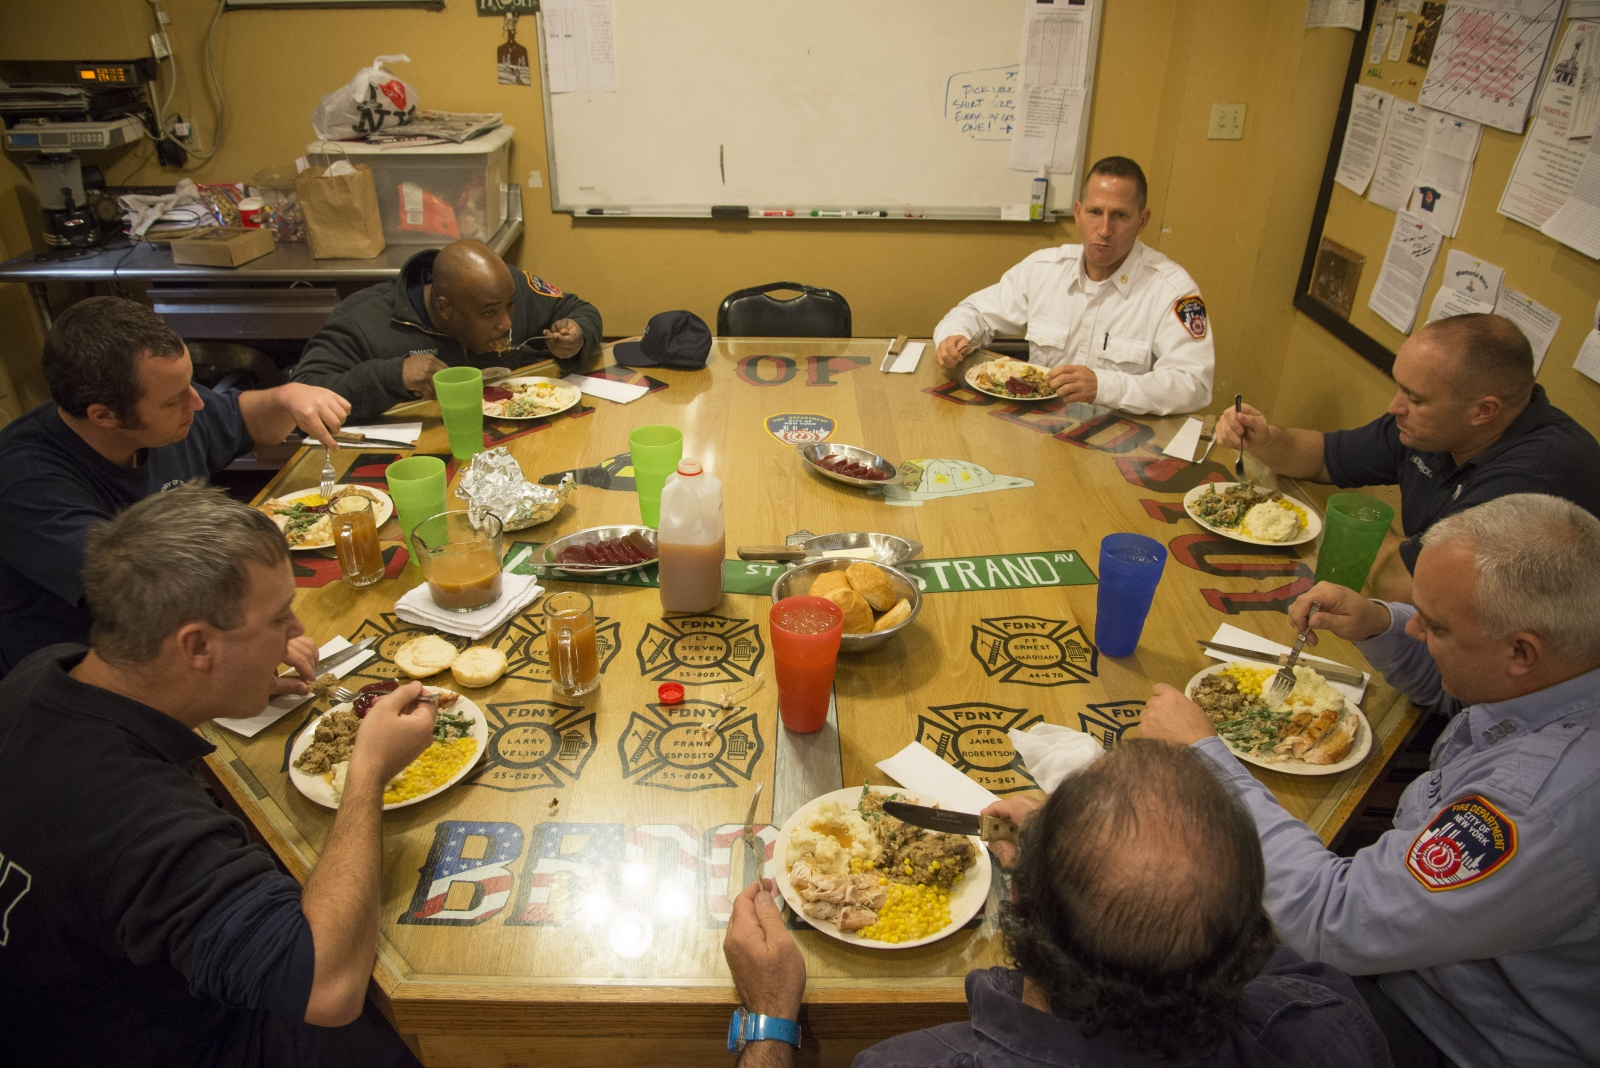 Firefighters of firehouse 235 eat Thanksgiving dinner while on the job. Firefighter Colabella comments he doesn't mind working Thanksgiving shifts because he knows he will be with the best of men.